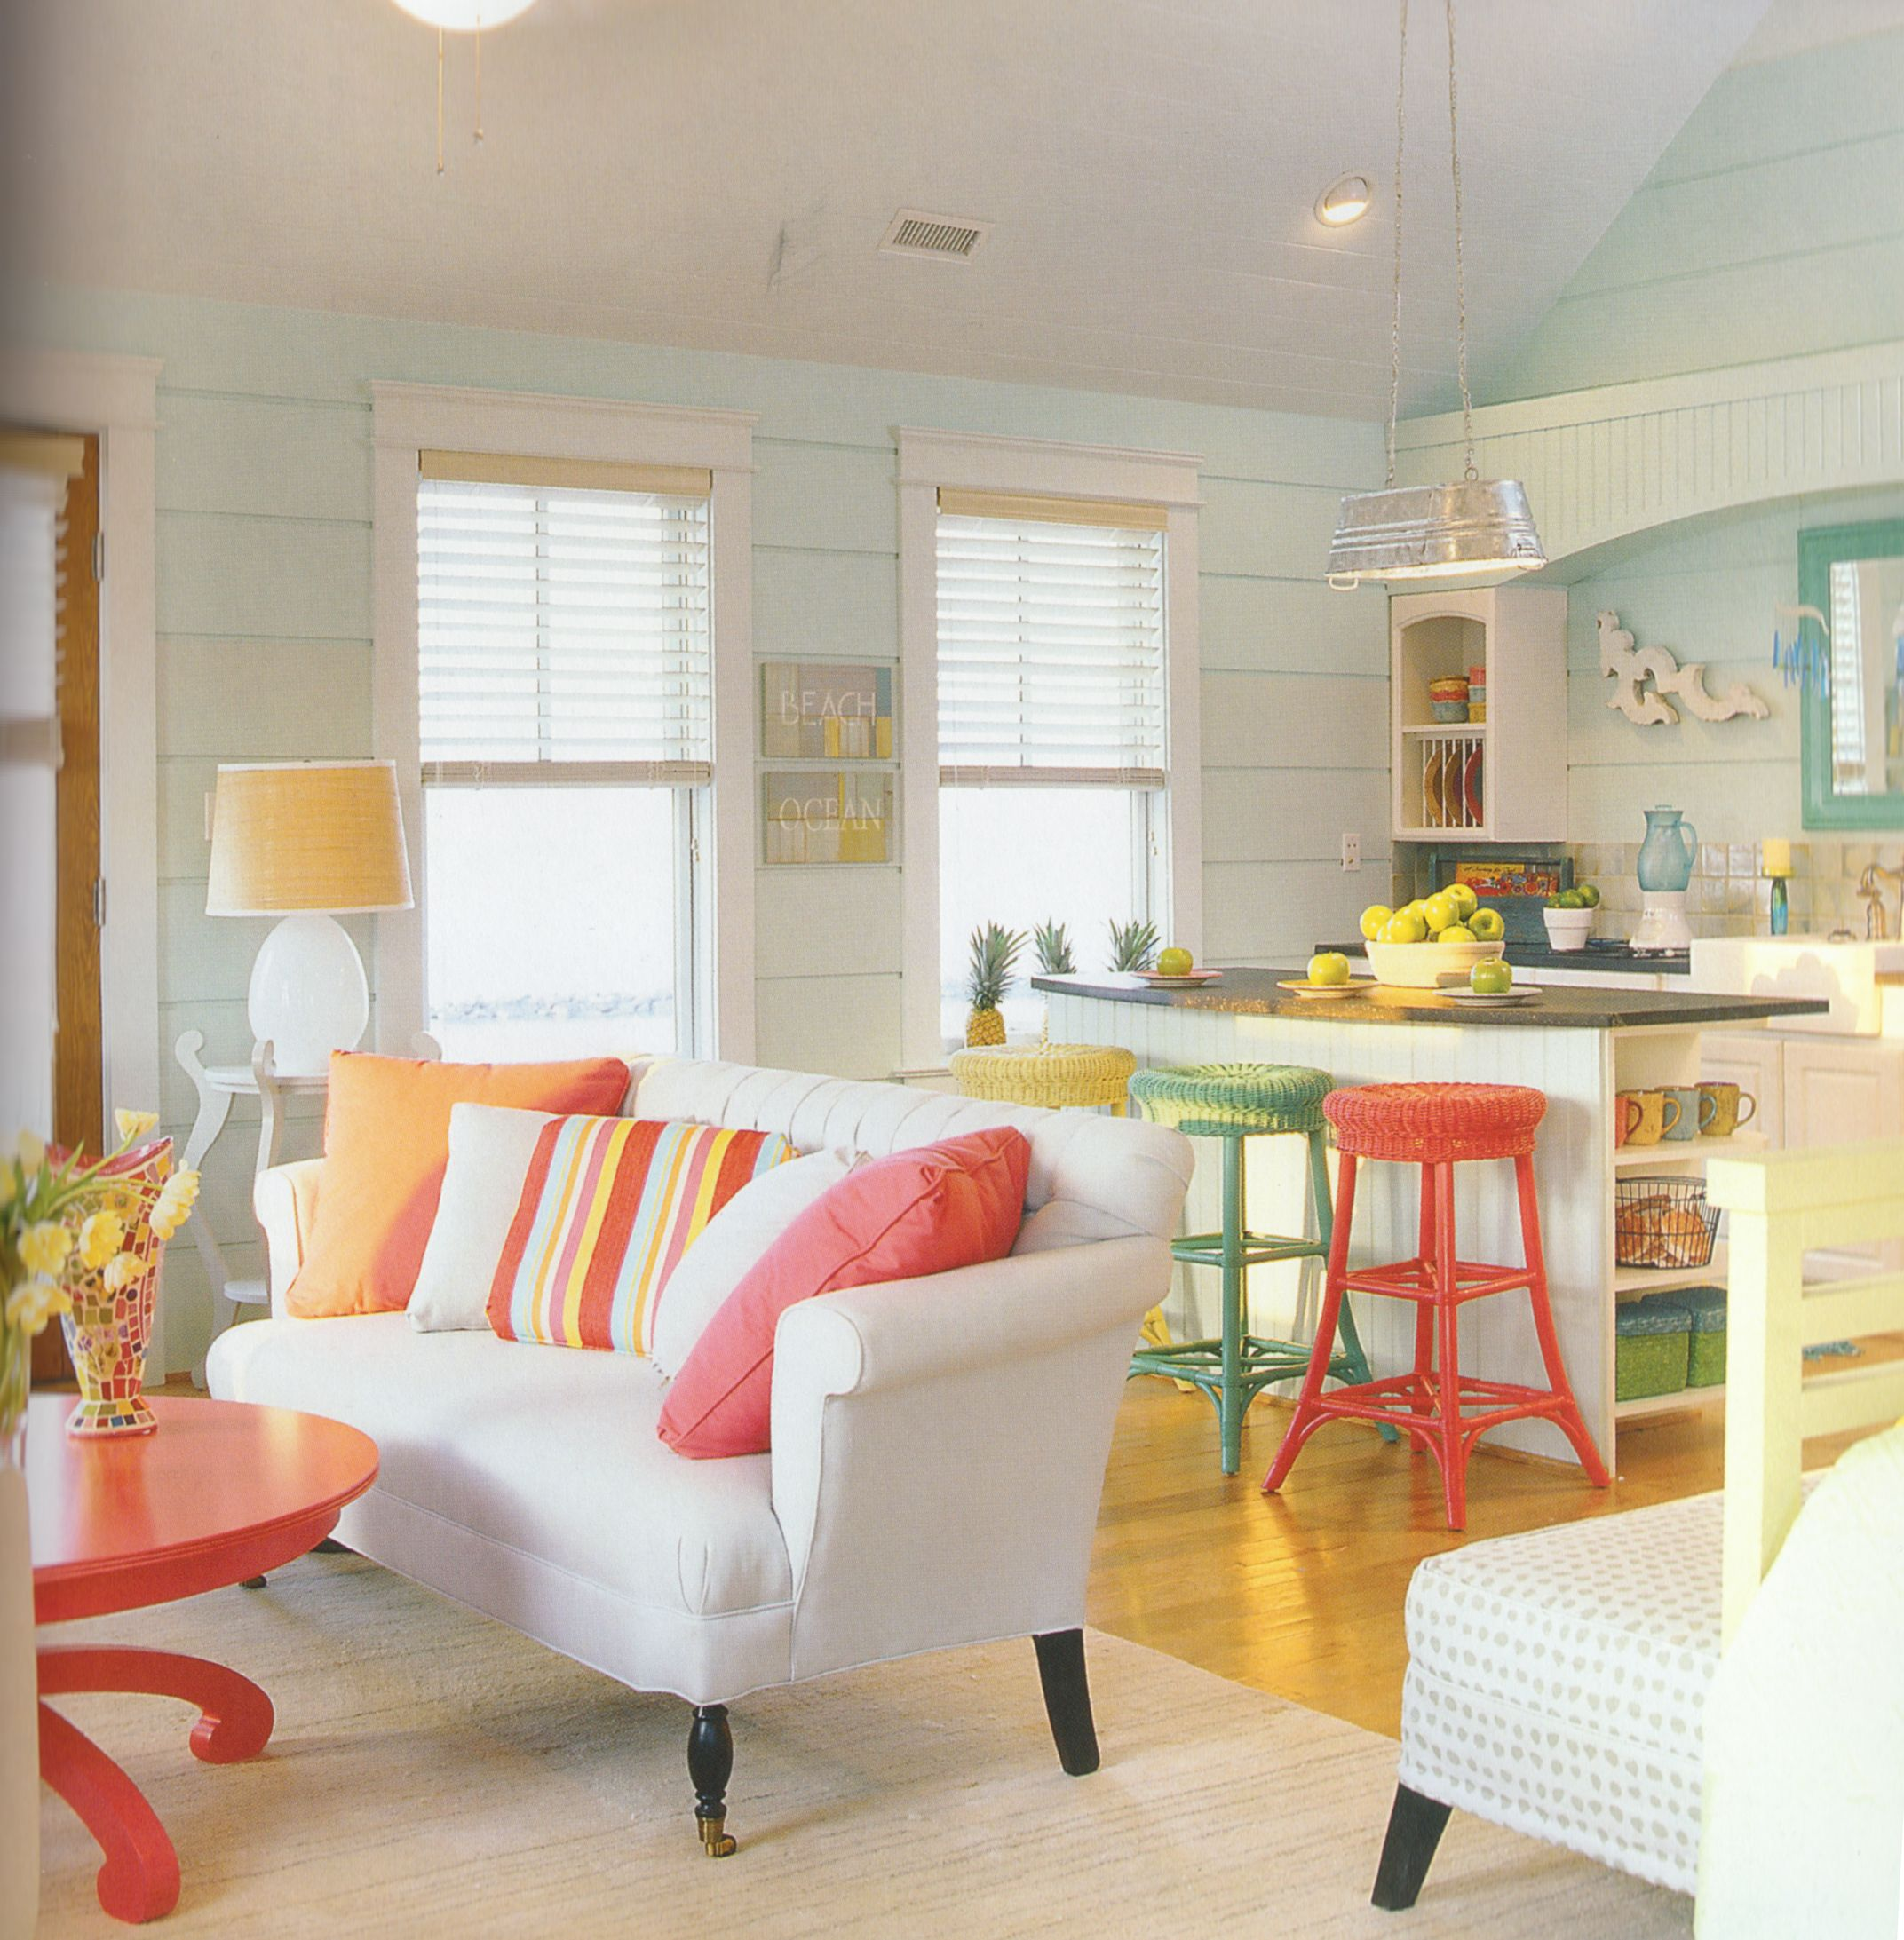 Colorful Cottage Rooms: Color. Home. Decor. Happy. Design. Furniture. @Barlara